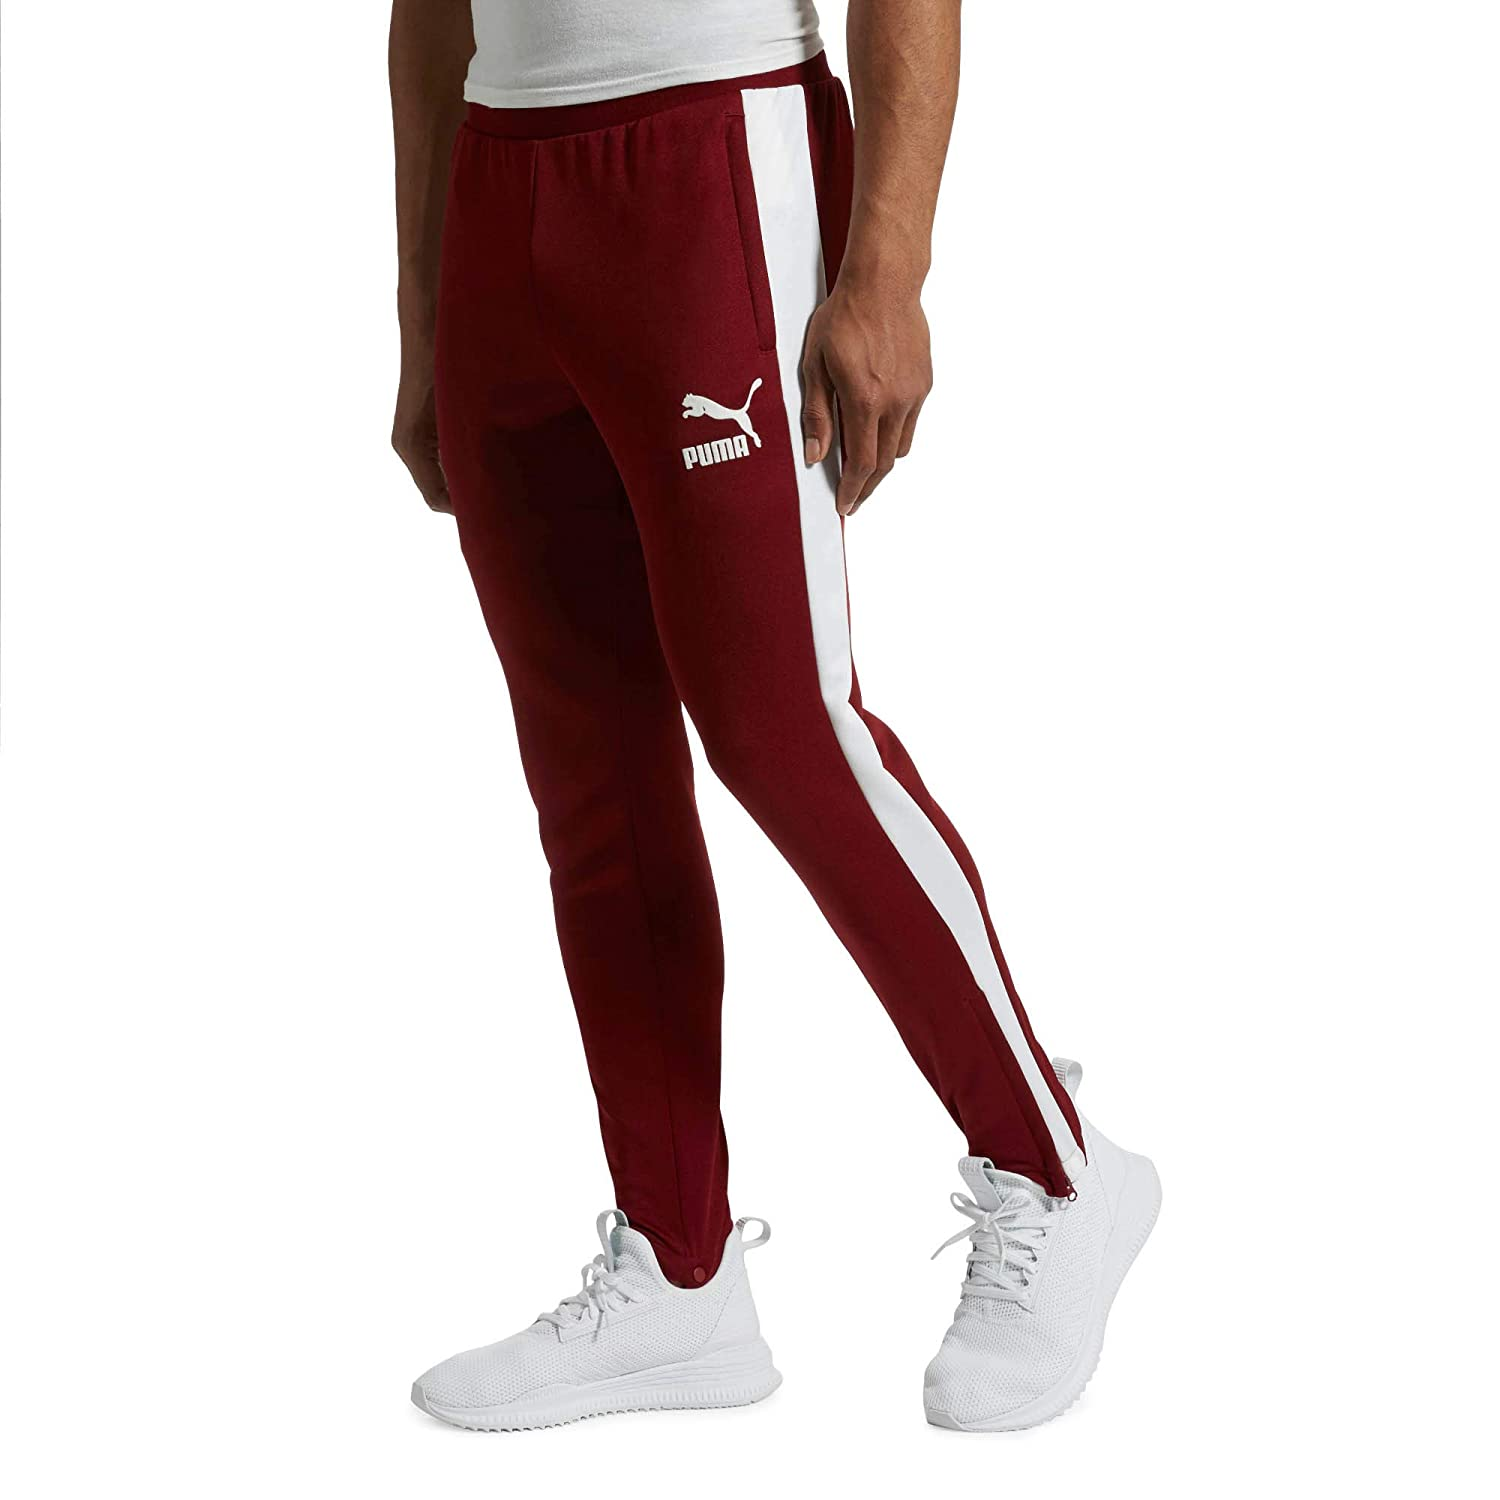 019bd4d6edcb Puma T7 Vintage Track Pants at Amazon Men s Clothing store